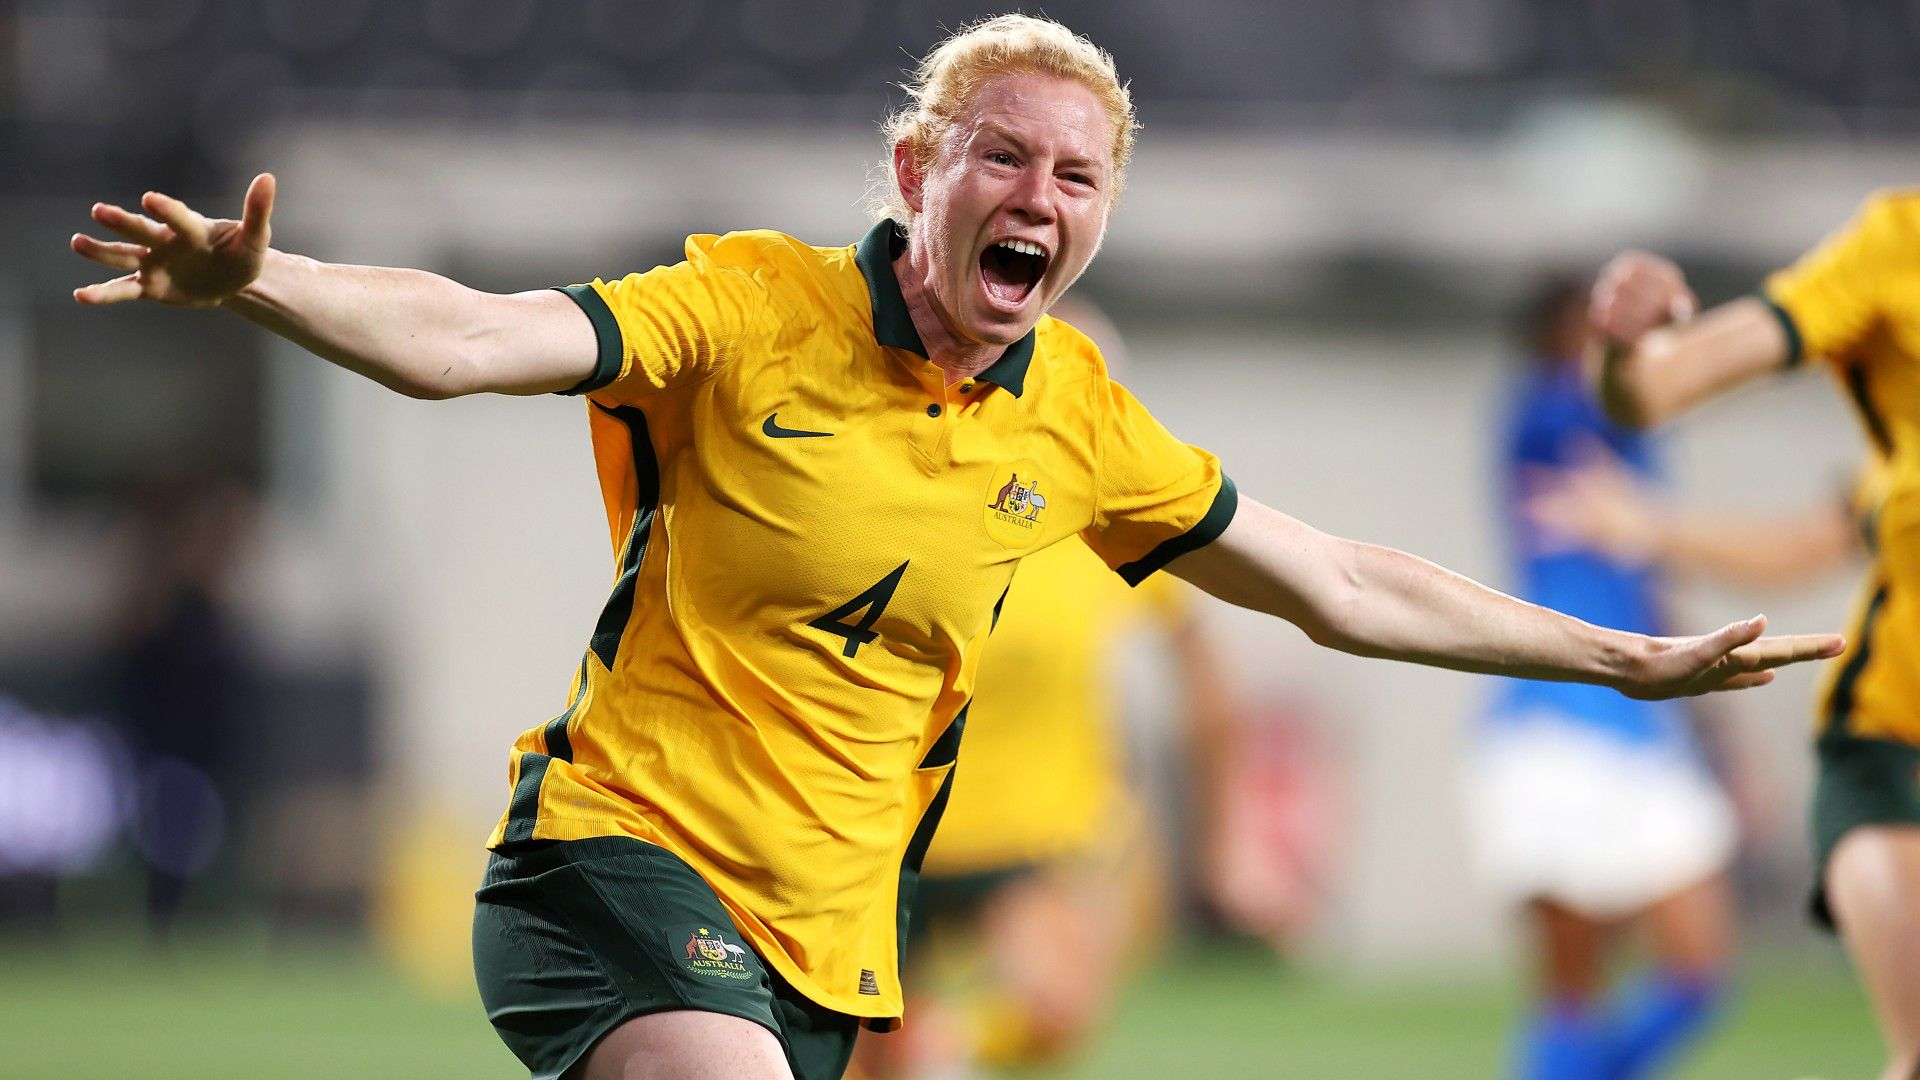 Matildas return home after nearly two years